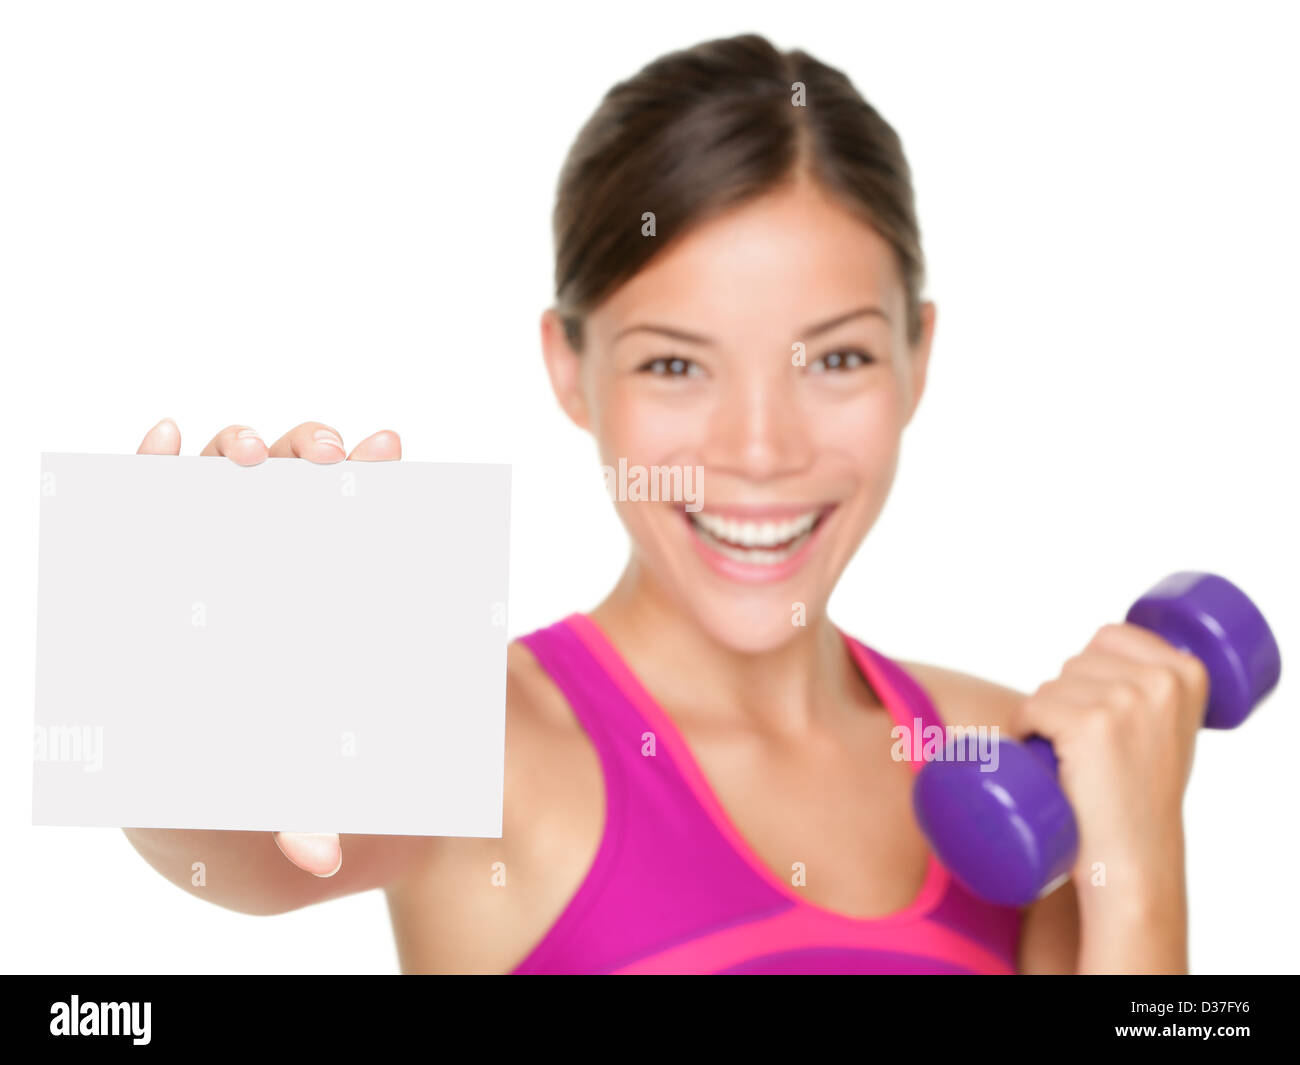 Portrait of smiling woman with dumbbells showing empty blank paper sign isolated on white background - Stock Image